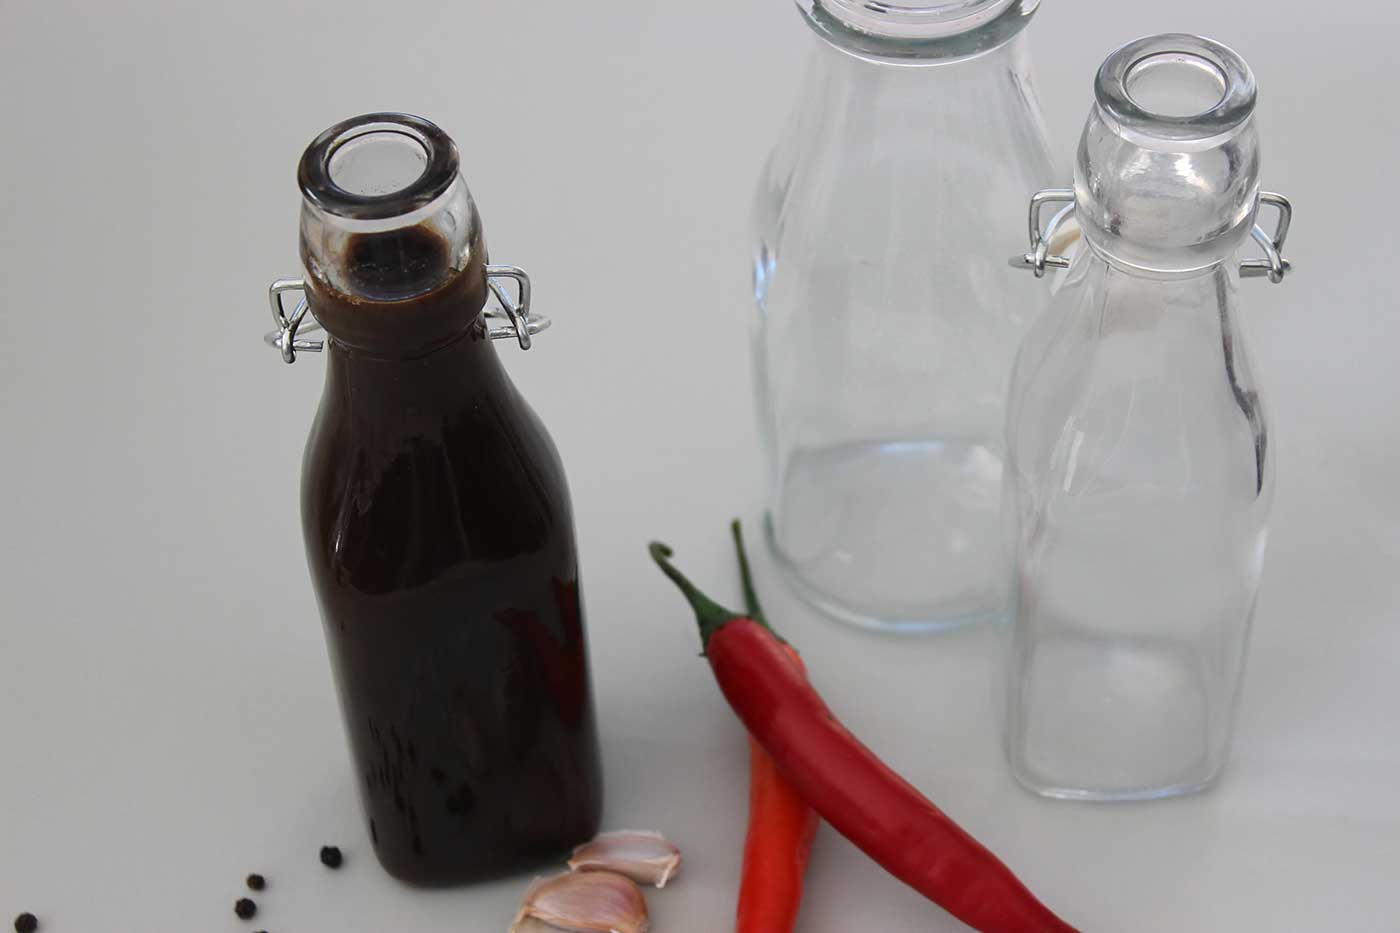 Worcestershire-Sauce-Thermomix-Recipe